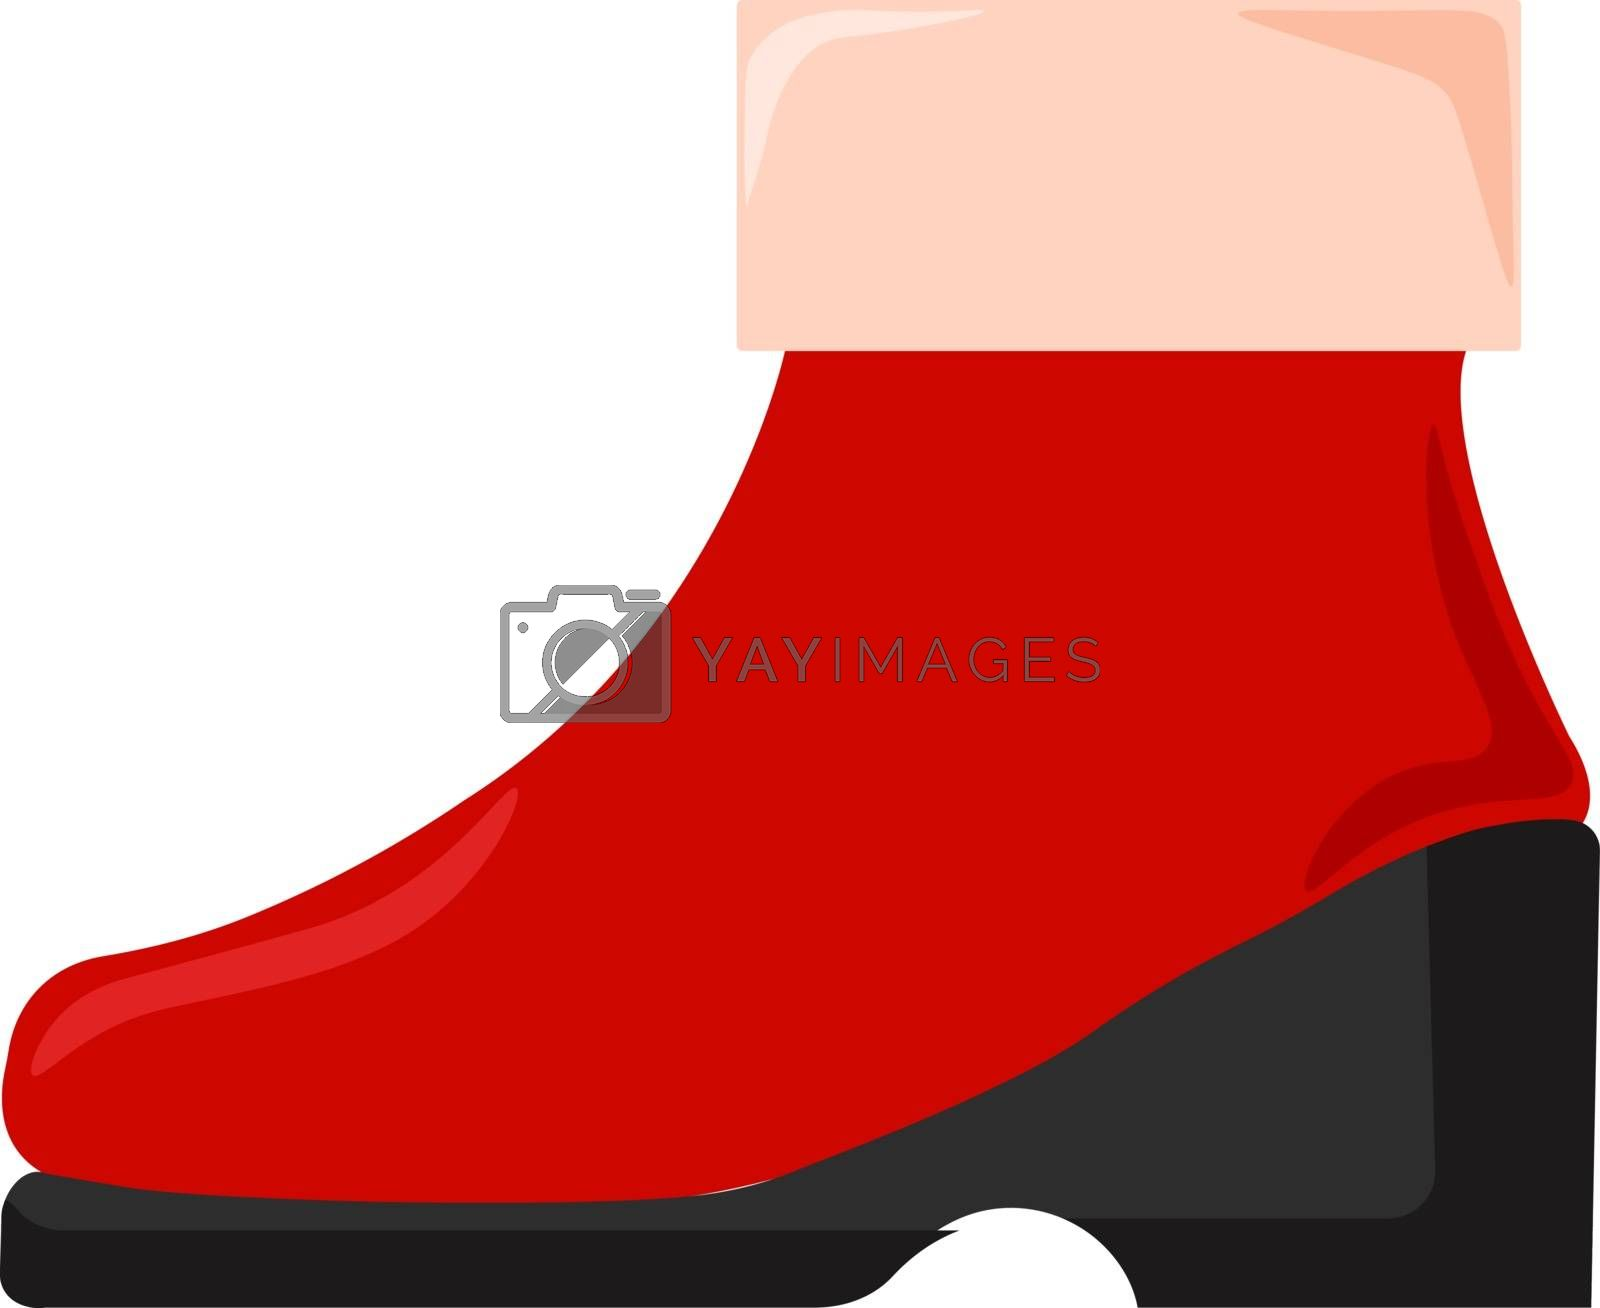 Red shoe, illustration, vector on white background.